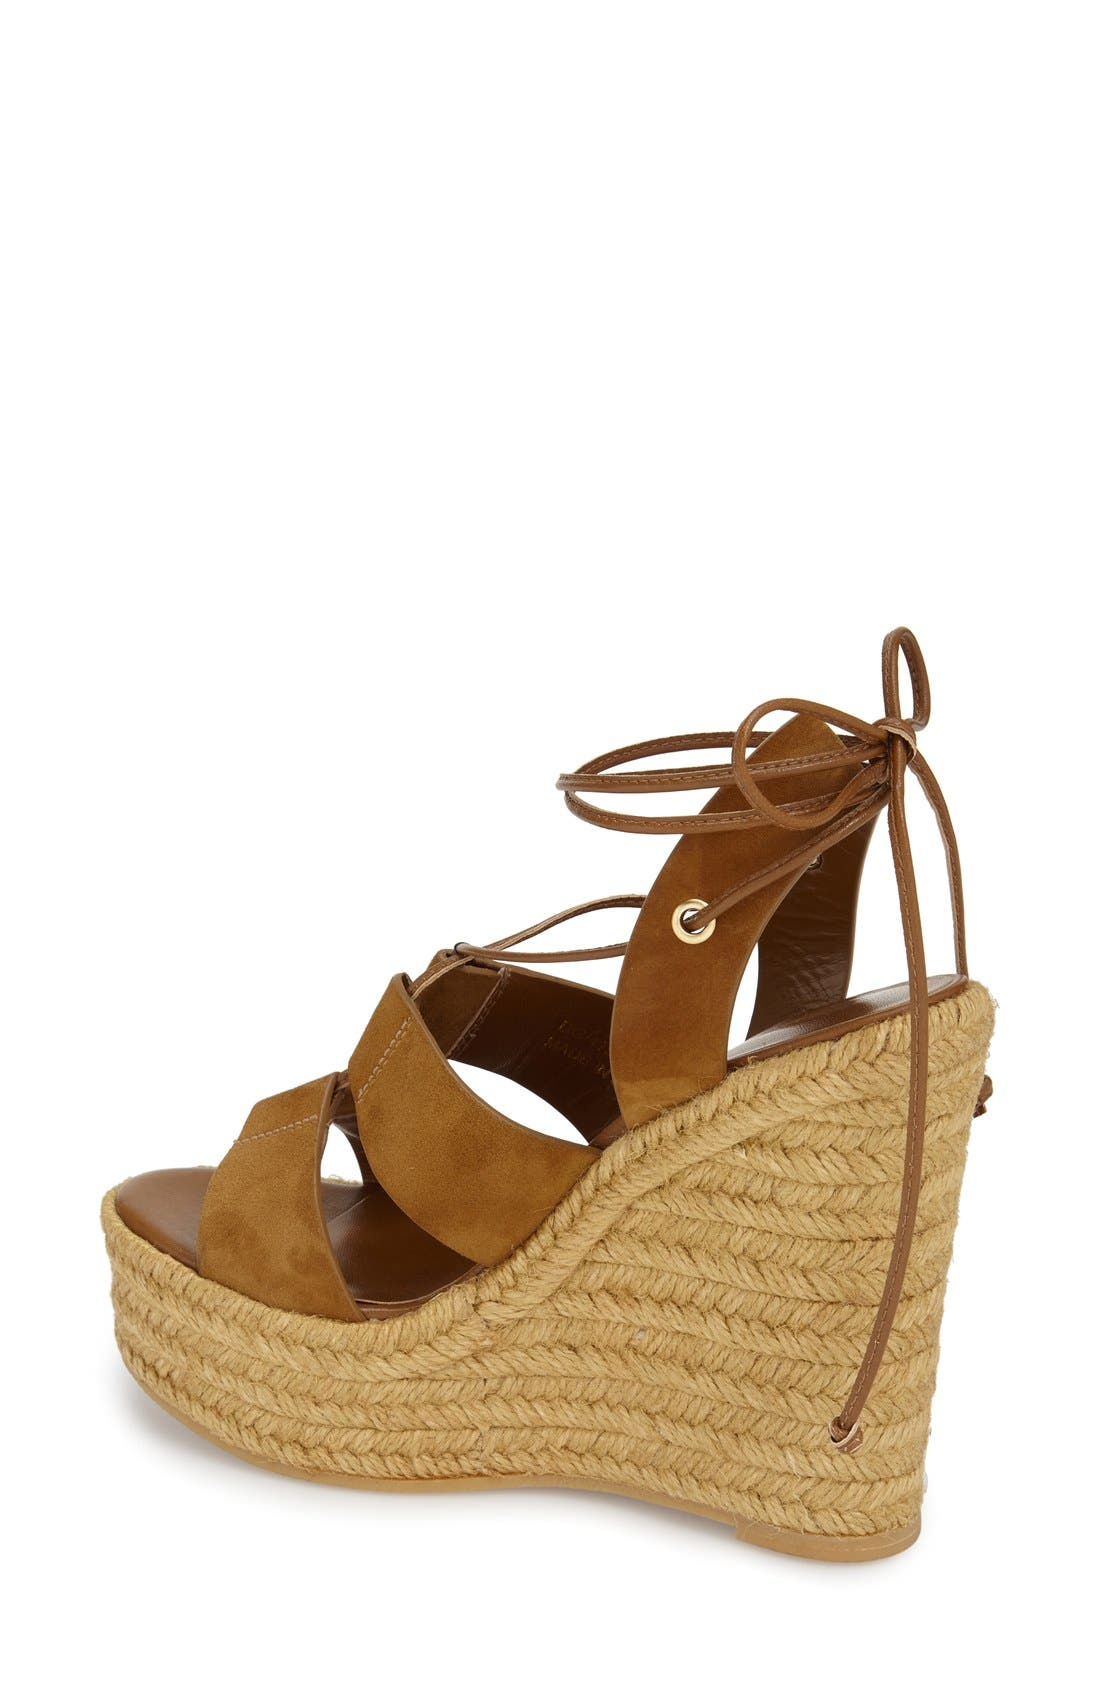 Woven Espadrille Wedge Sandal,                             Alternate thumbnail 2, color,                             Tan Suede